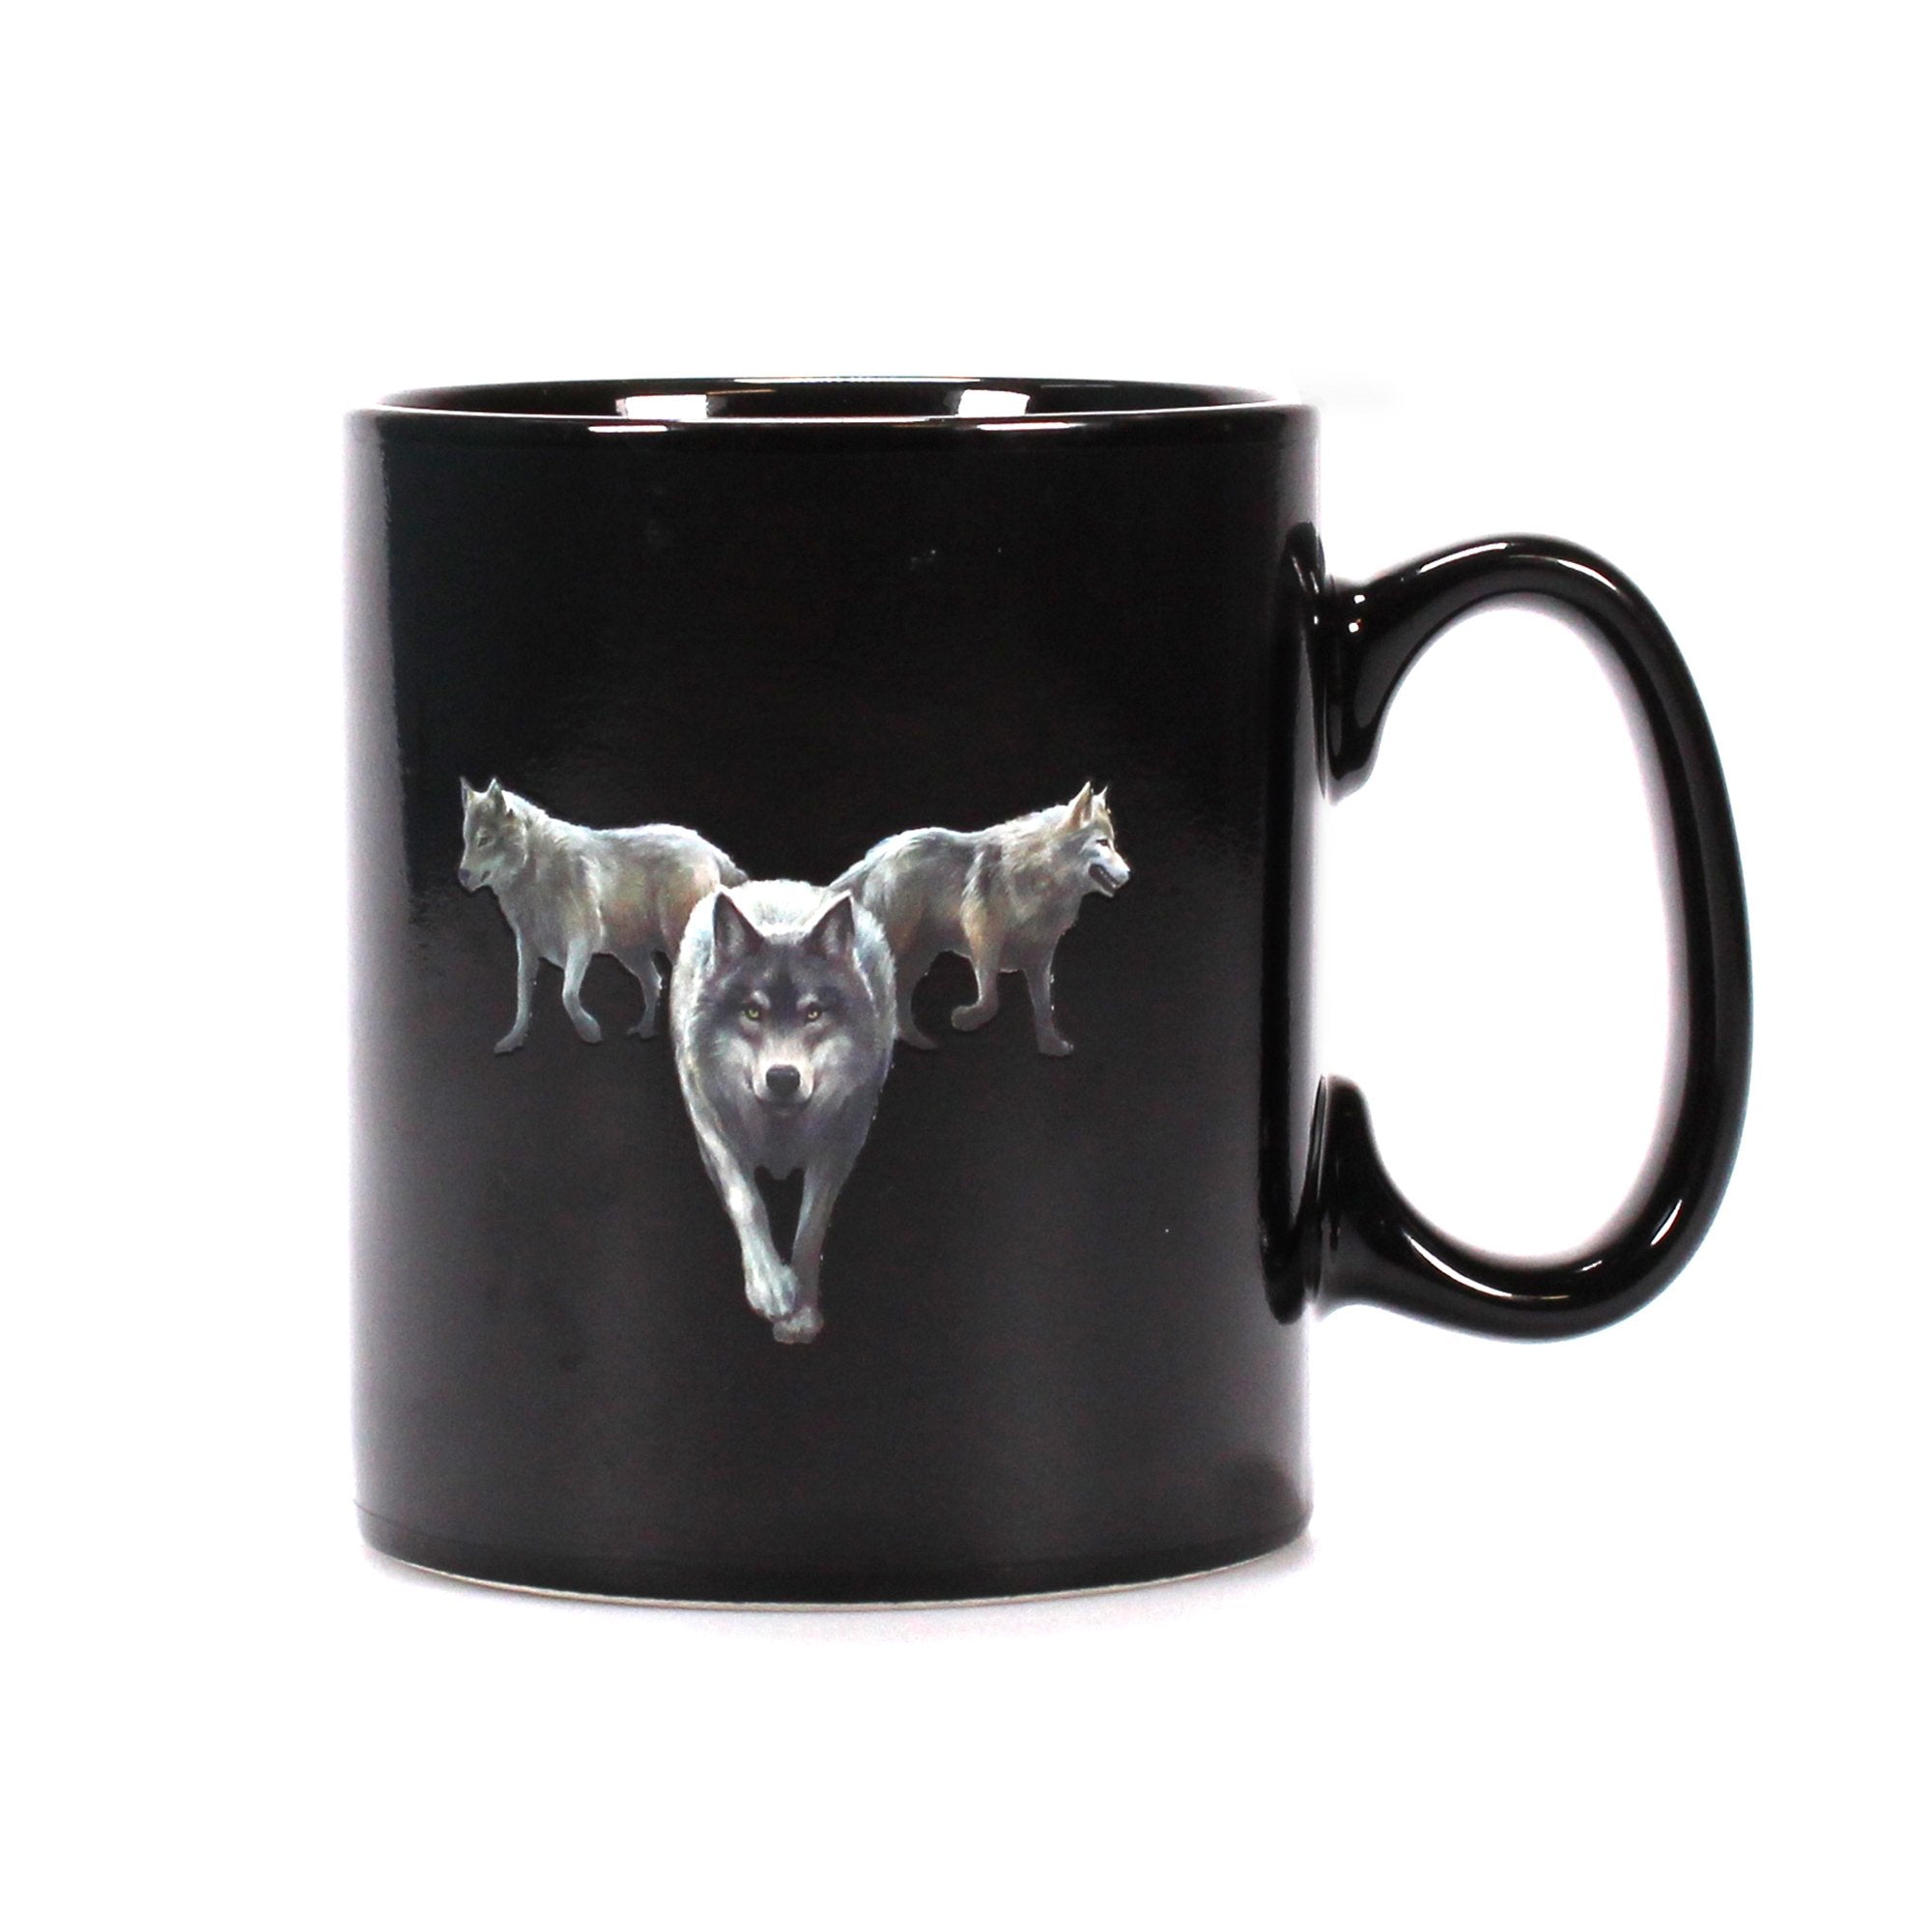 Anne Stokes Heat Changing Mug - Wolf Trio - Half Moon Bay US